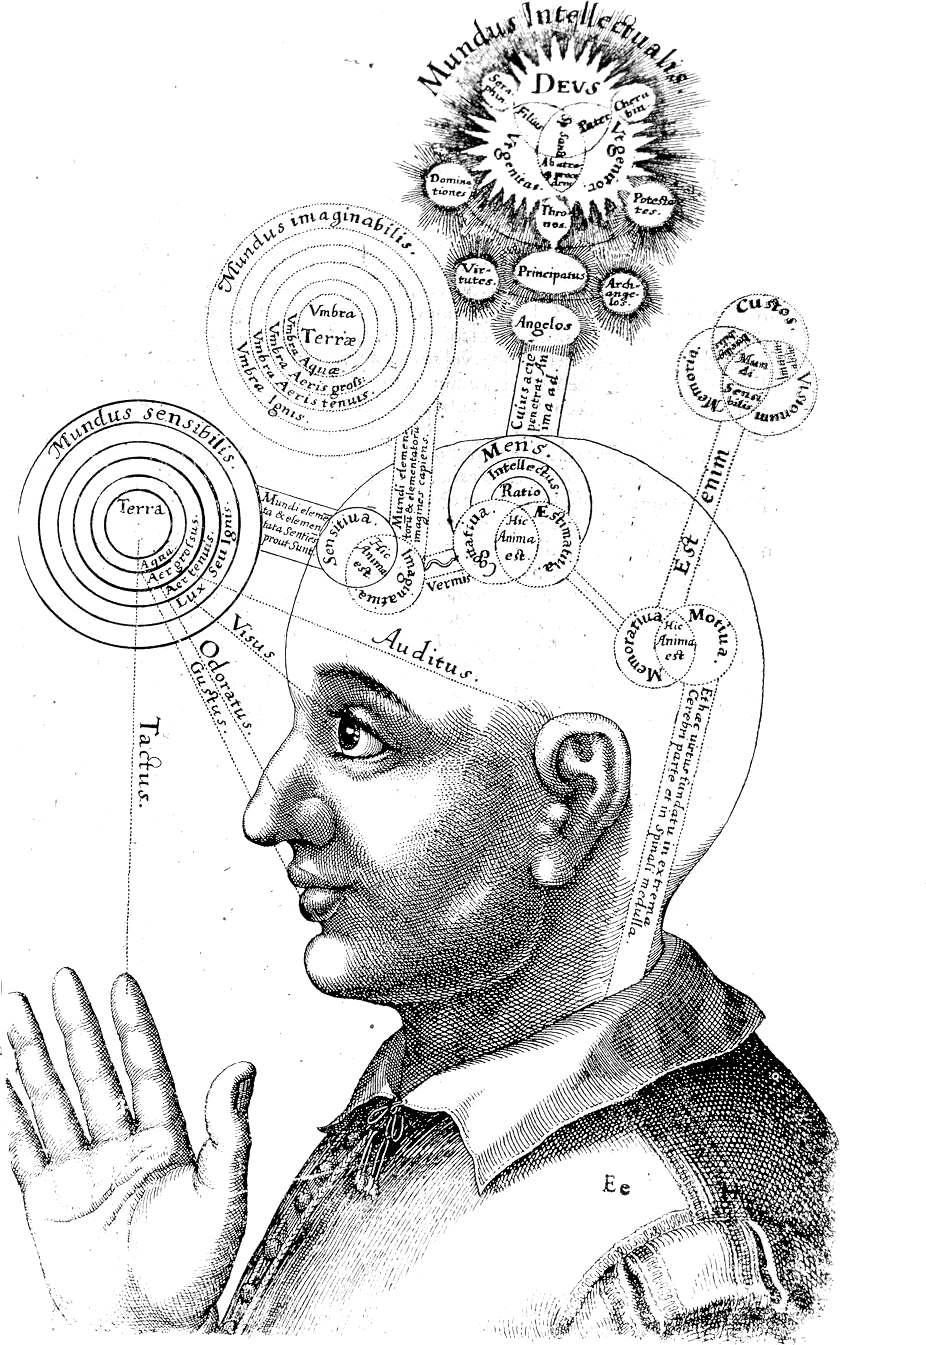 Illustration of man with many ideas floating over his head